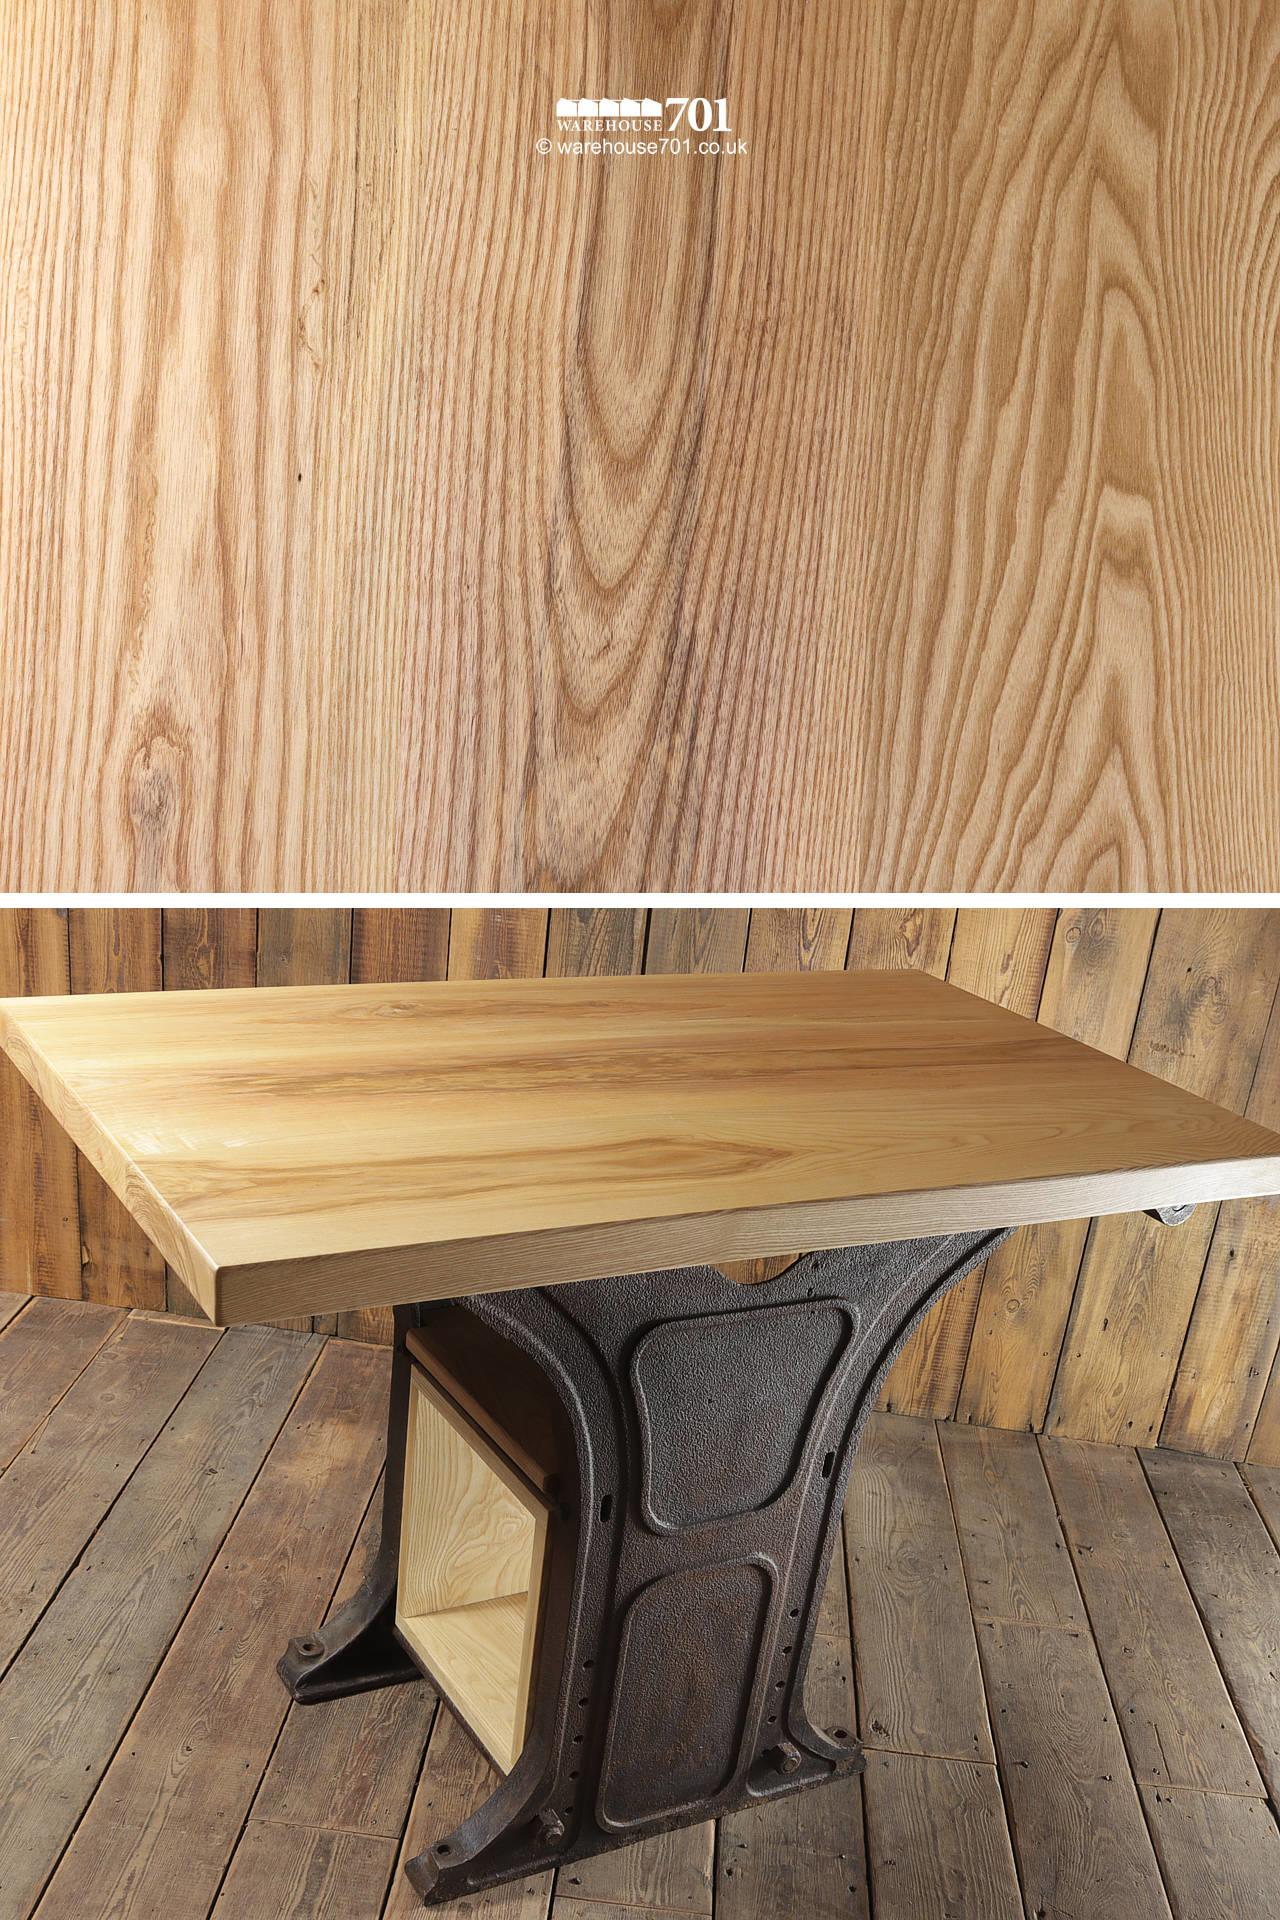 701 Original Industrial Base Highly Figured American Ash Table with Storage